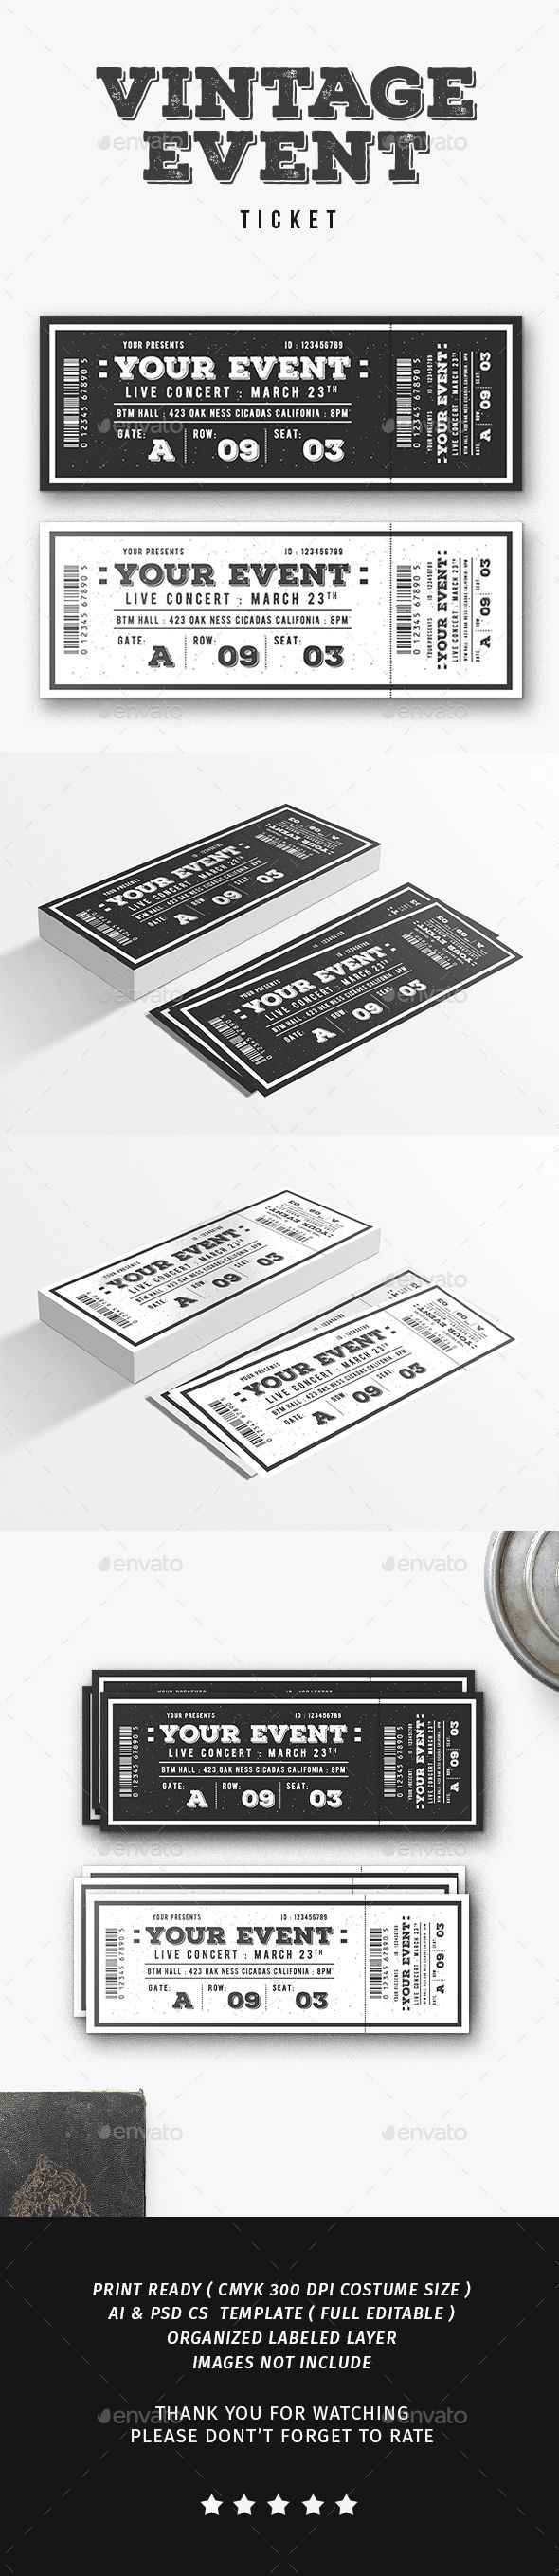 Vintage Event Ticket  Event Ticket Ticket Template And Template